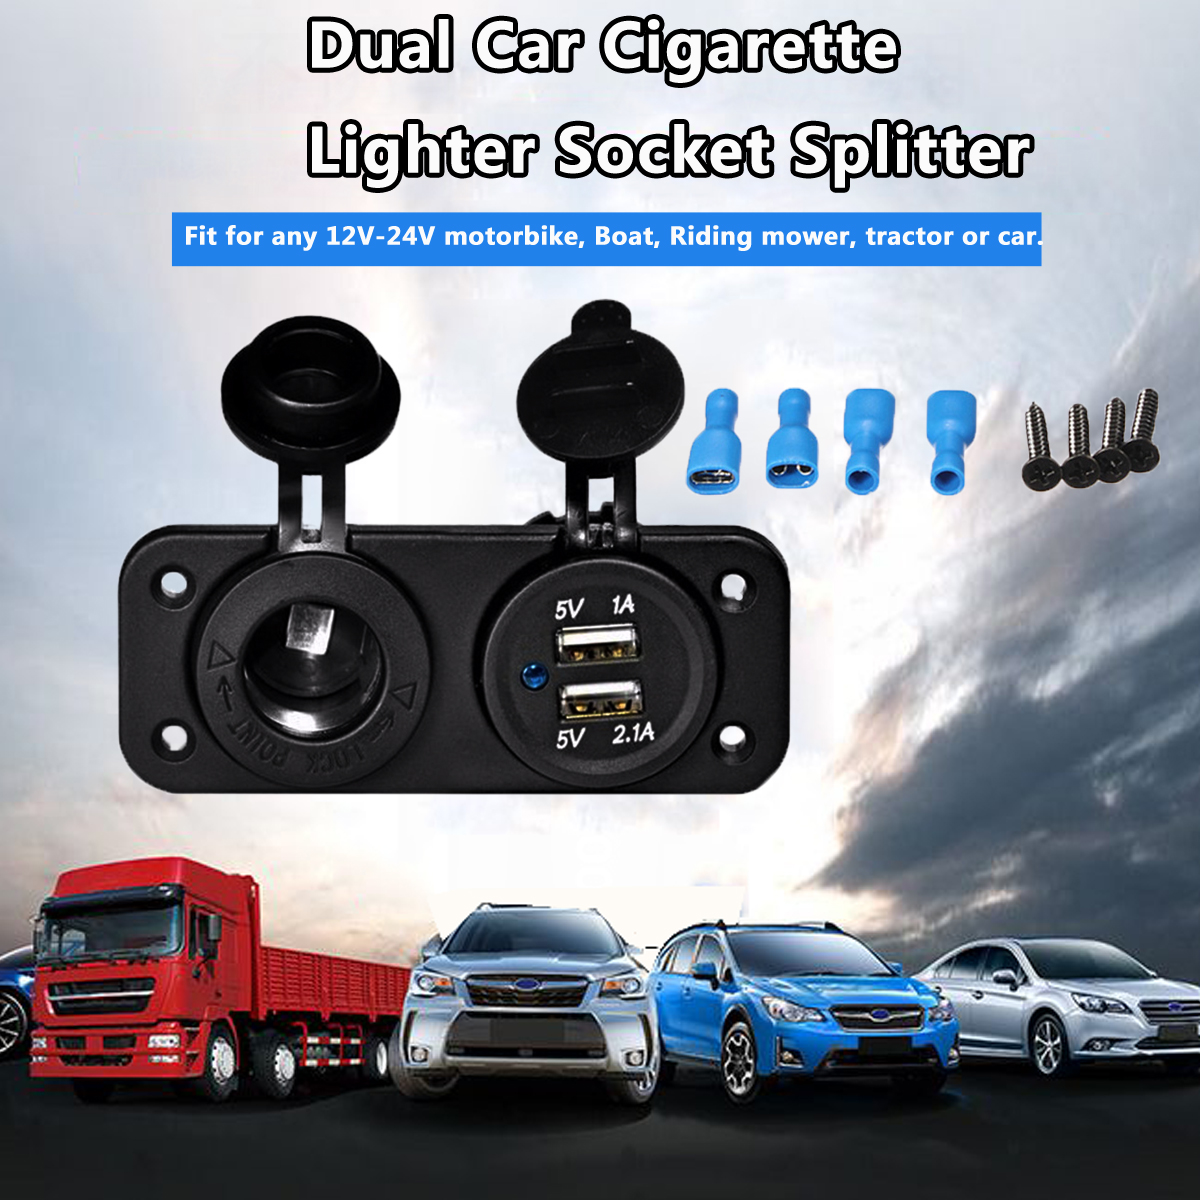 12V Dual USB Car Cigarette Lighter Socket Splitter 12V 2.1A&1A Charger Power Adapter Outlet Accessories a24 2016 new arrive 12v dual usb car cigarette lighter socket splitter 12v charger power adapter outlet accessories